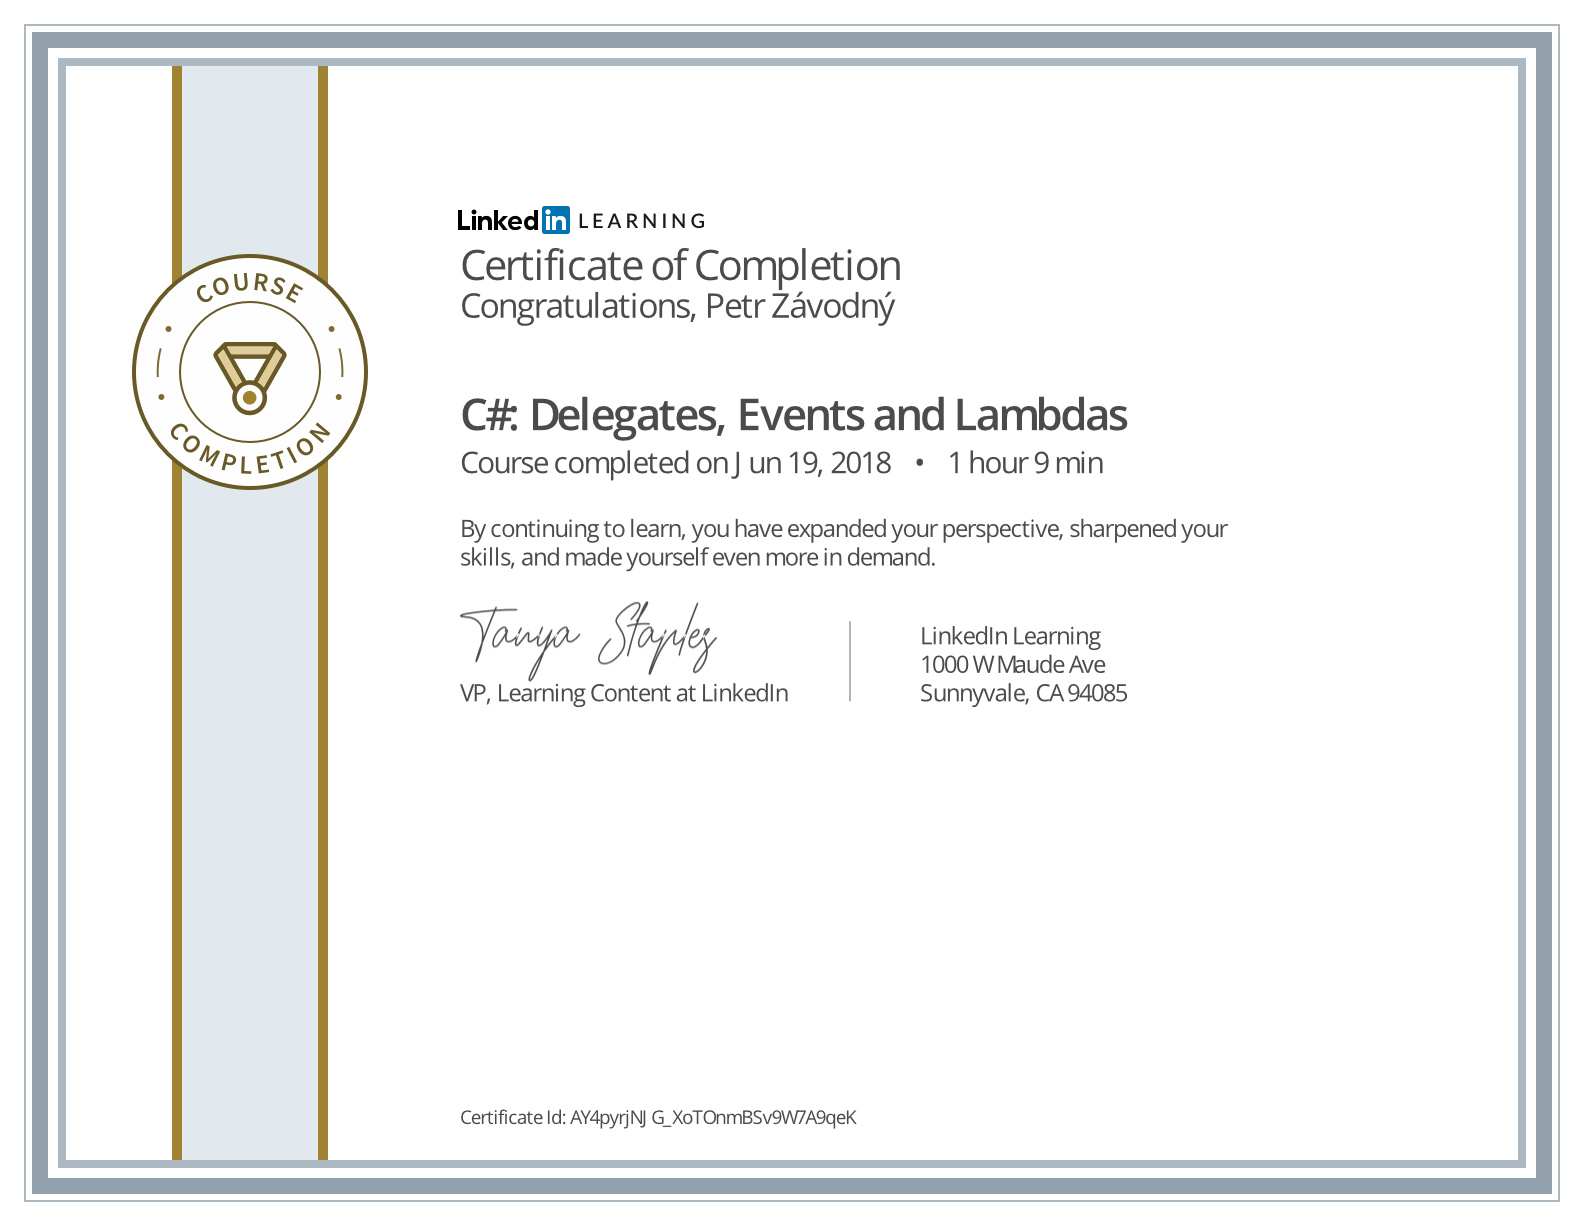 certificate C# Delegates, Events and Lambdas